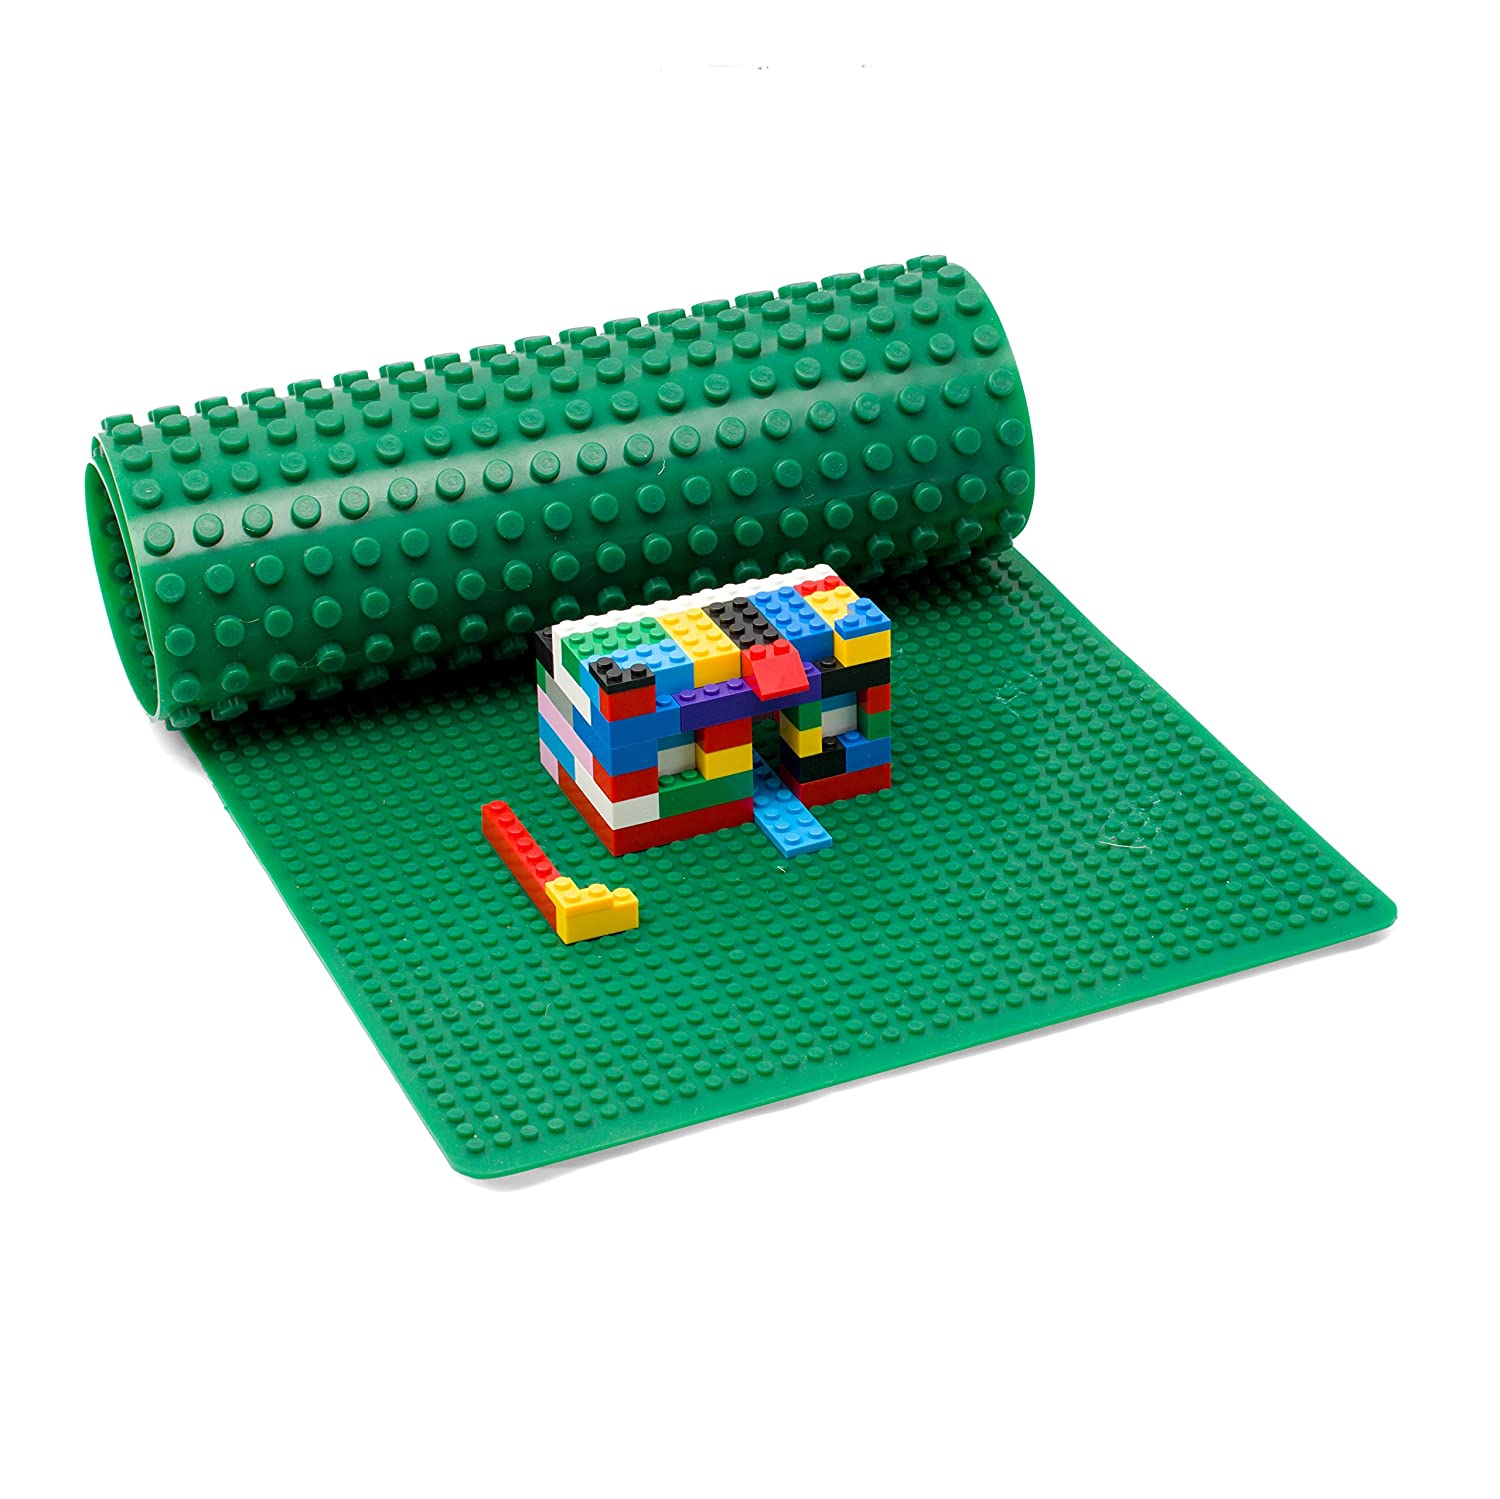 Image result for rollable lego mat